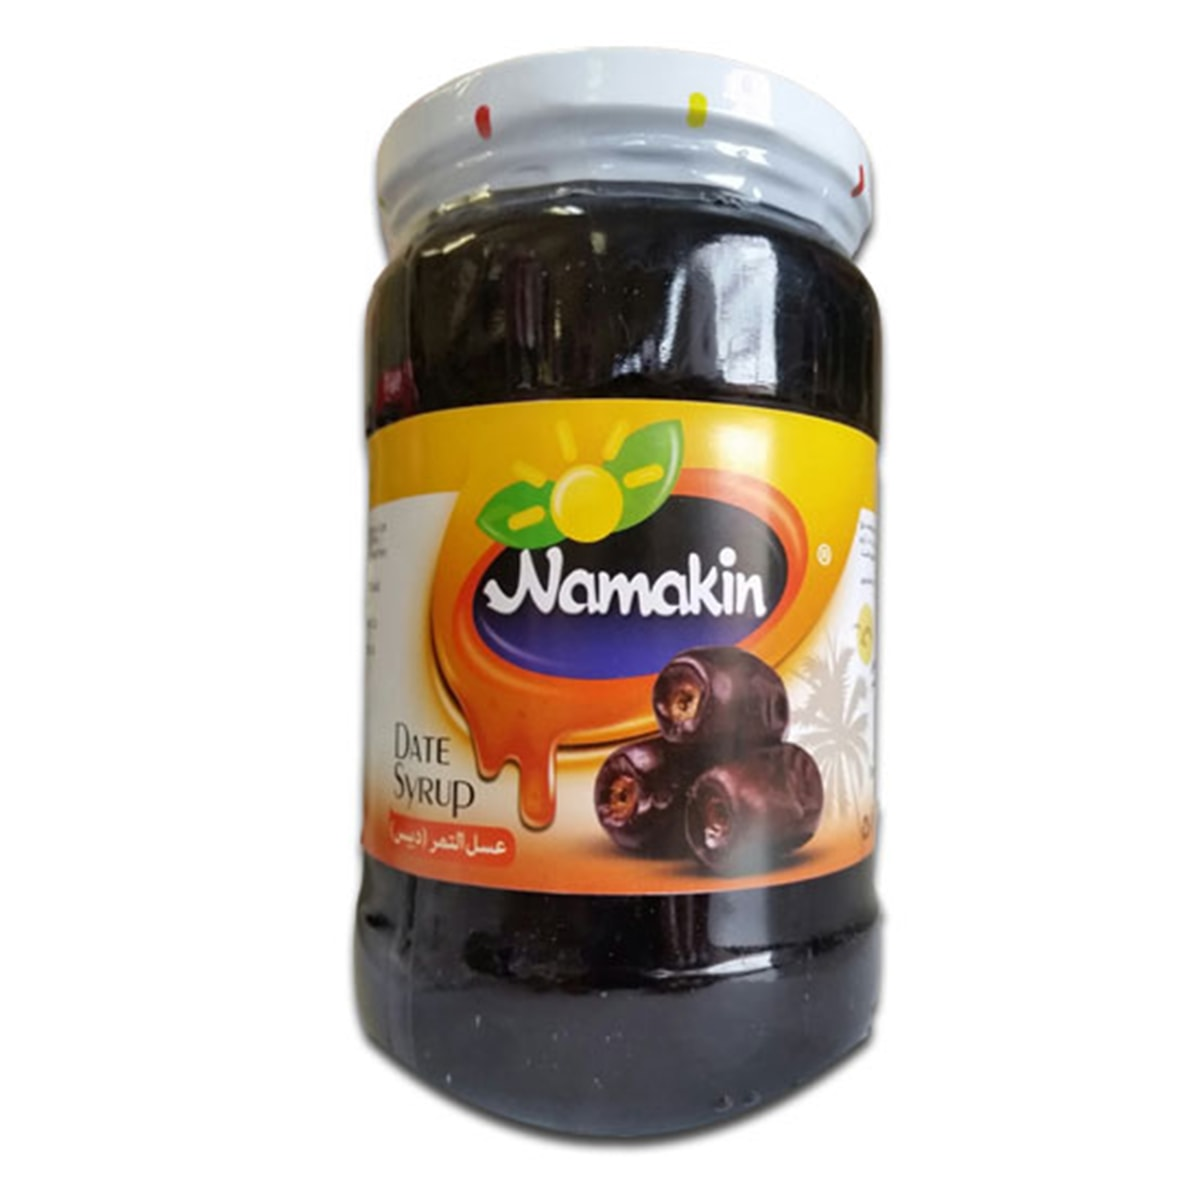 Buy Namakin Date Syrup (Date Molasses) - 700 gm